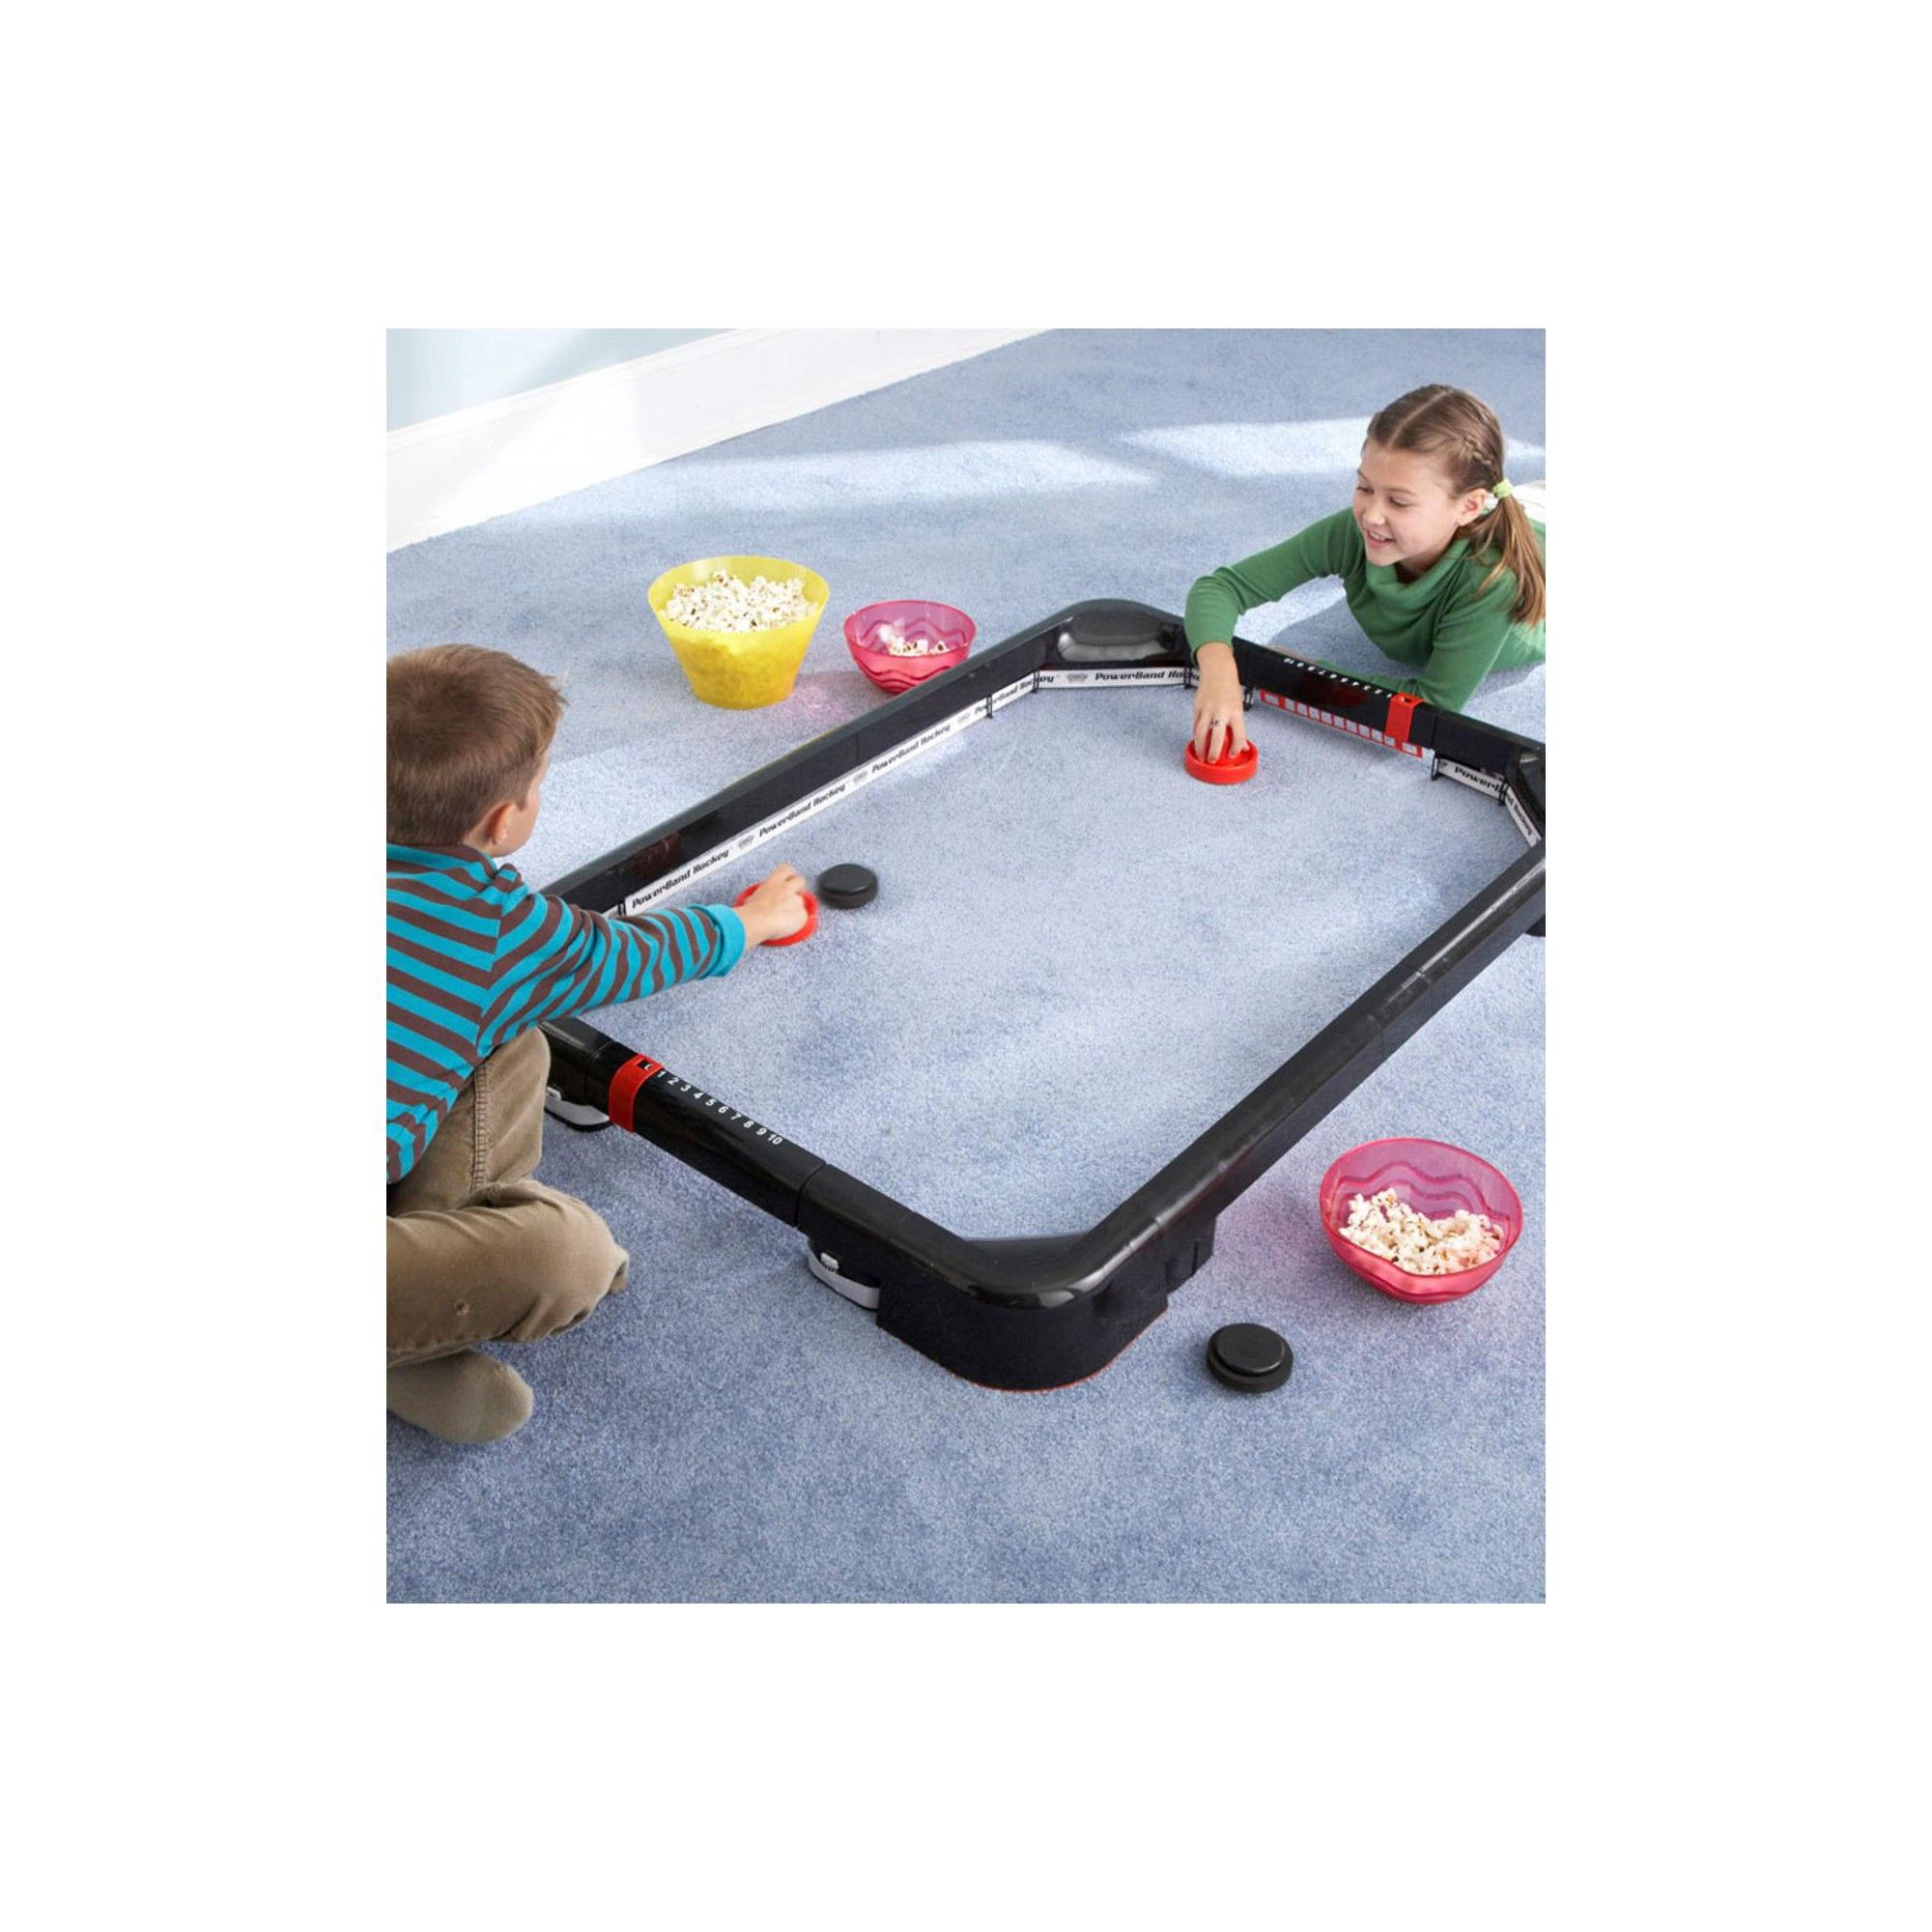 Simtec Powerband Air Hockey Tabletop Game For Kids Hearthsong Air Hockey Tabletop Games Air Hockey Table